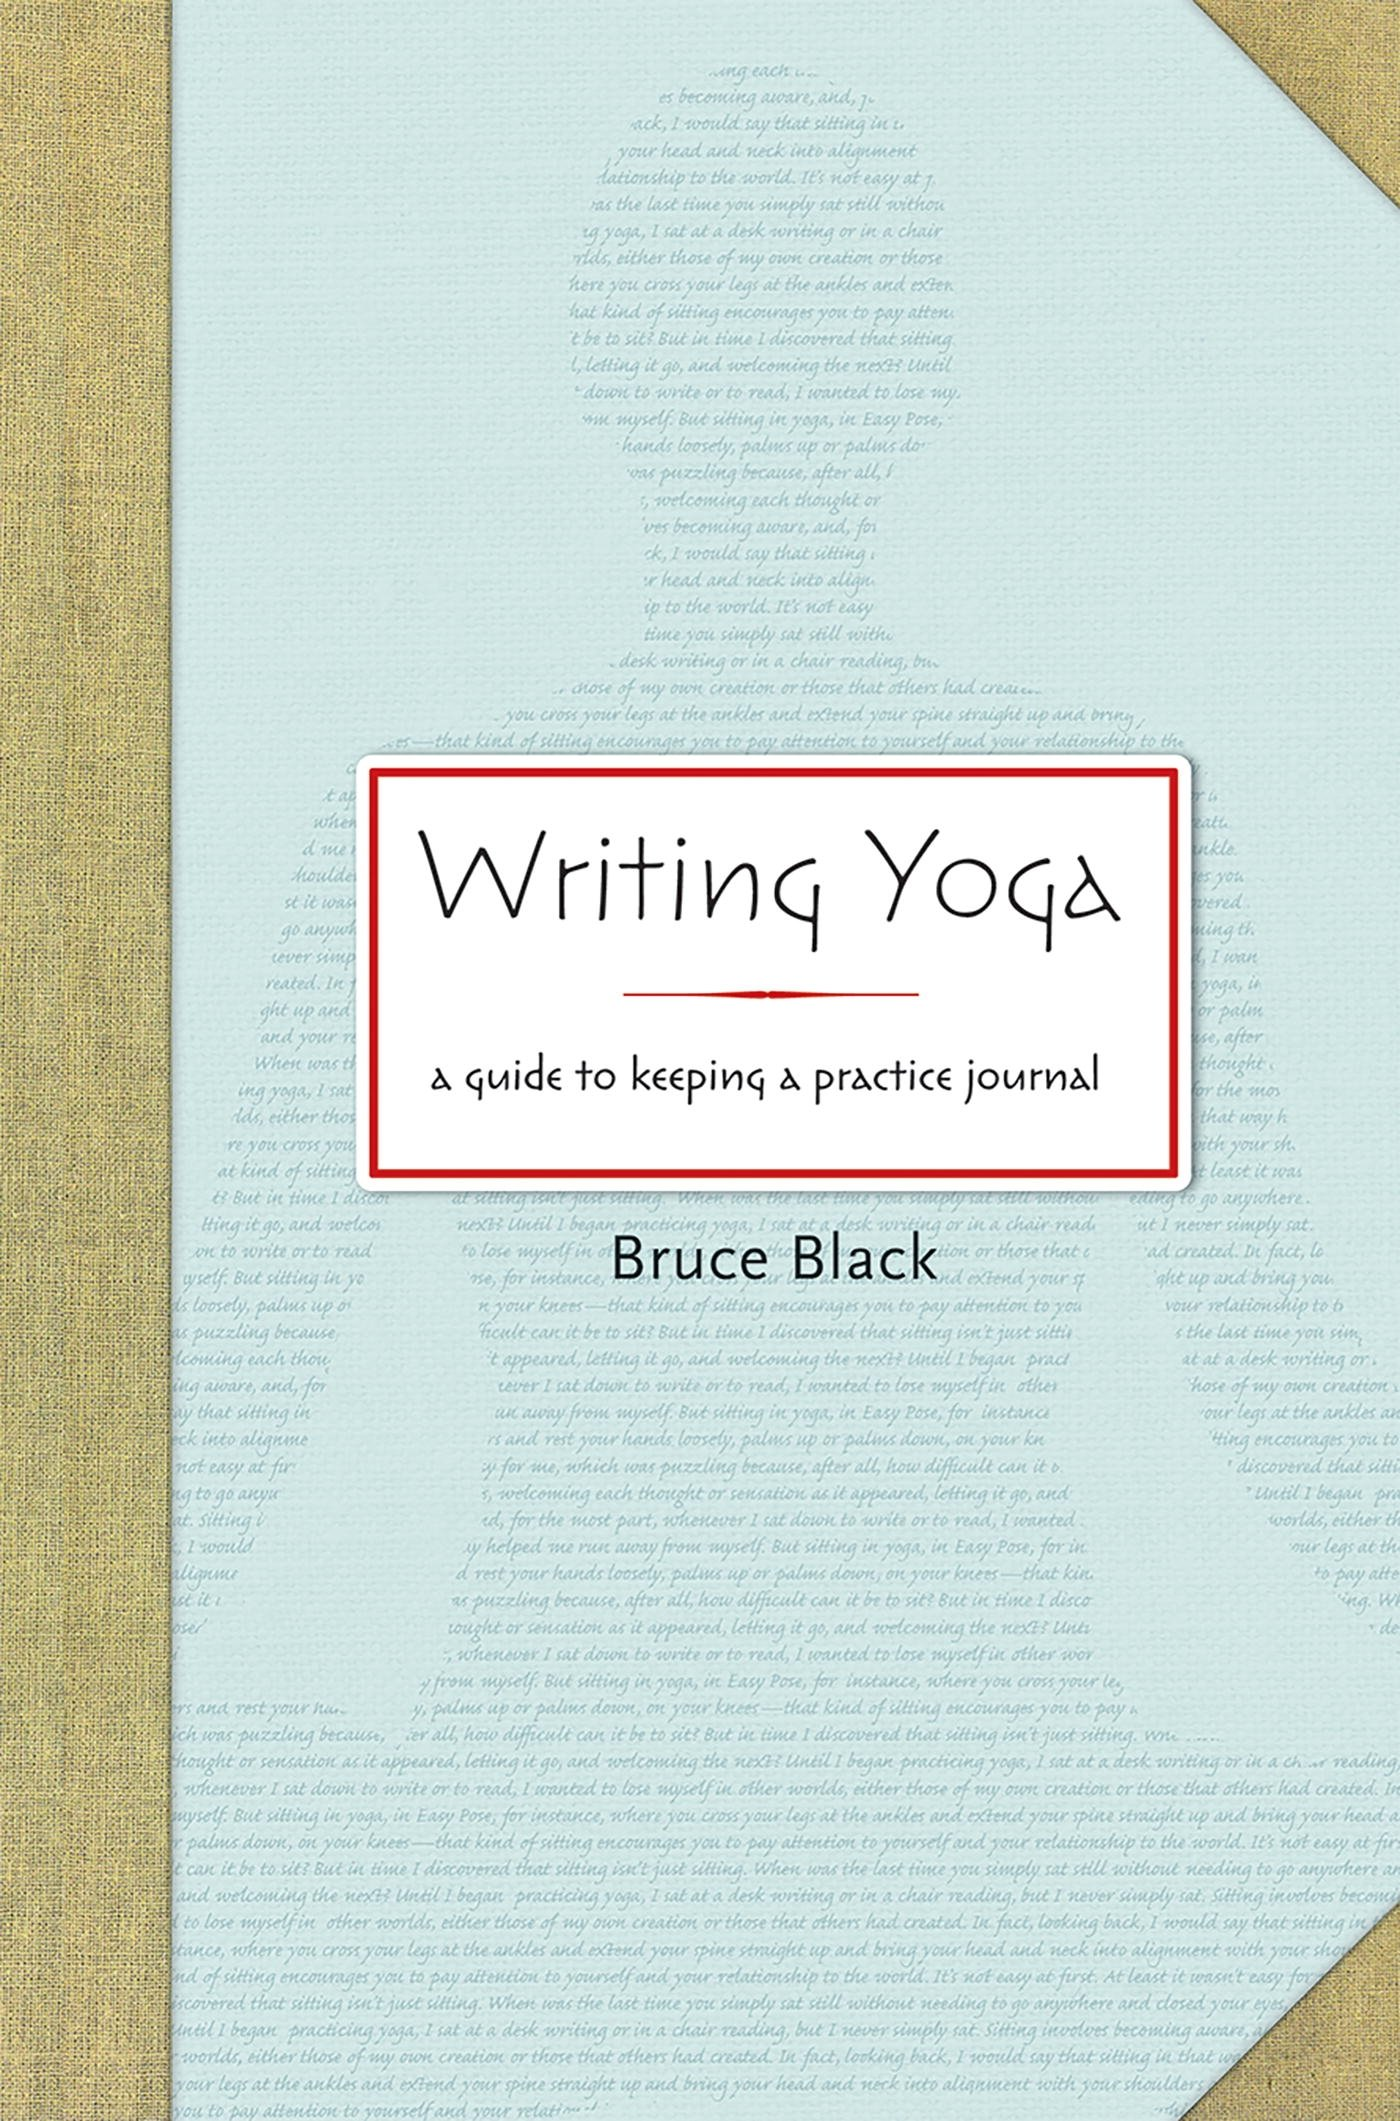 Writing Yoga: A Guide to Keeping a Practice Journal: Bruce Black:  9781930485280: Amazon.com: Books